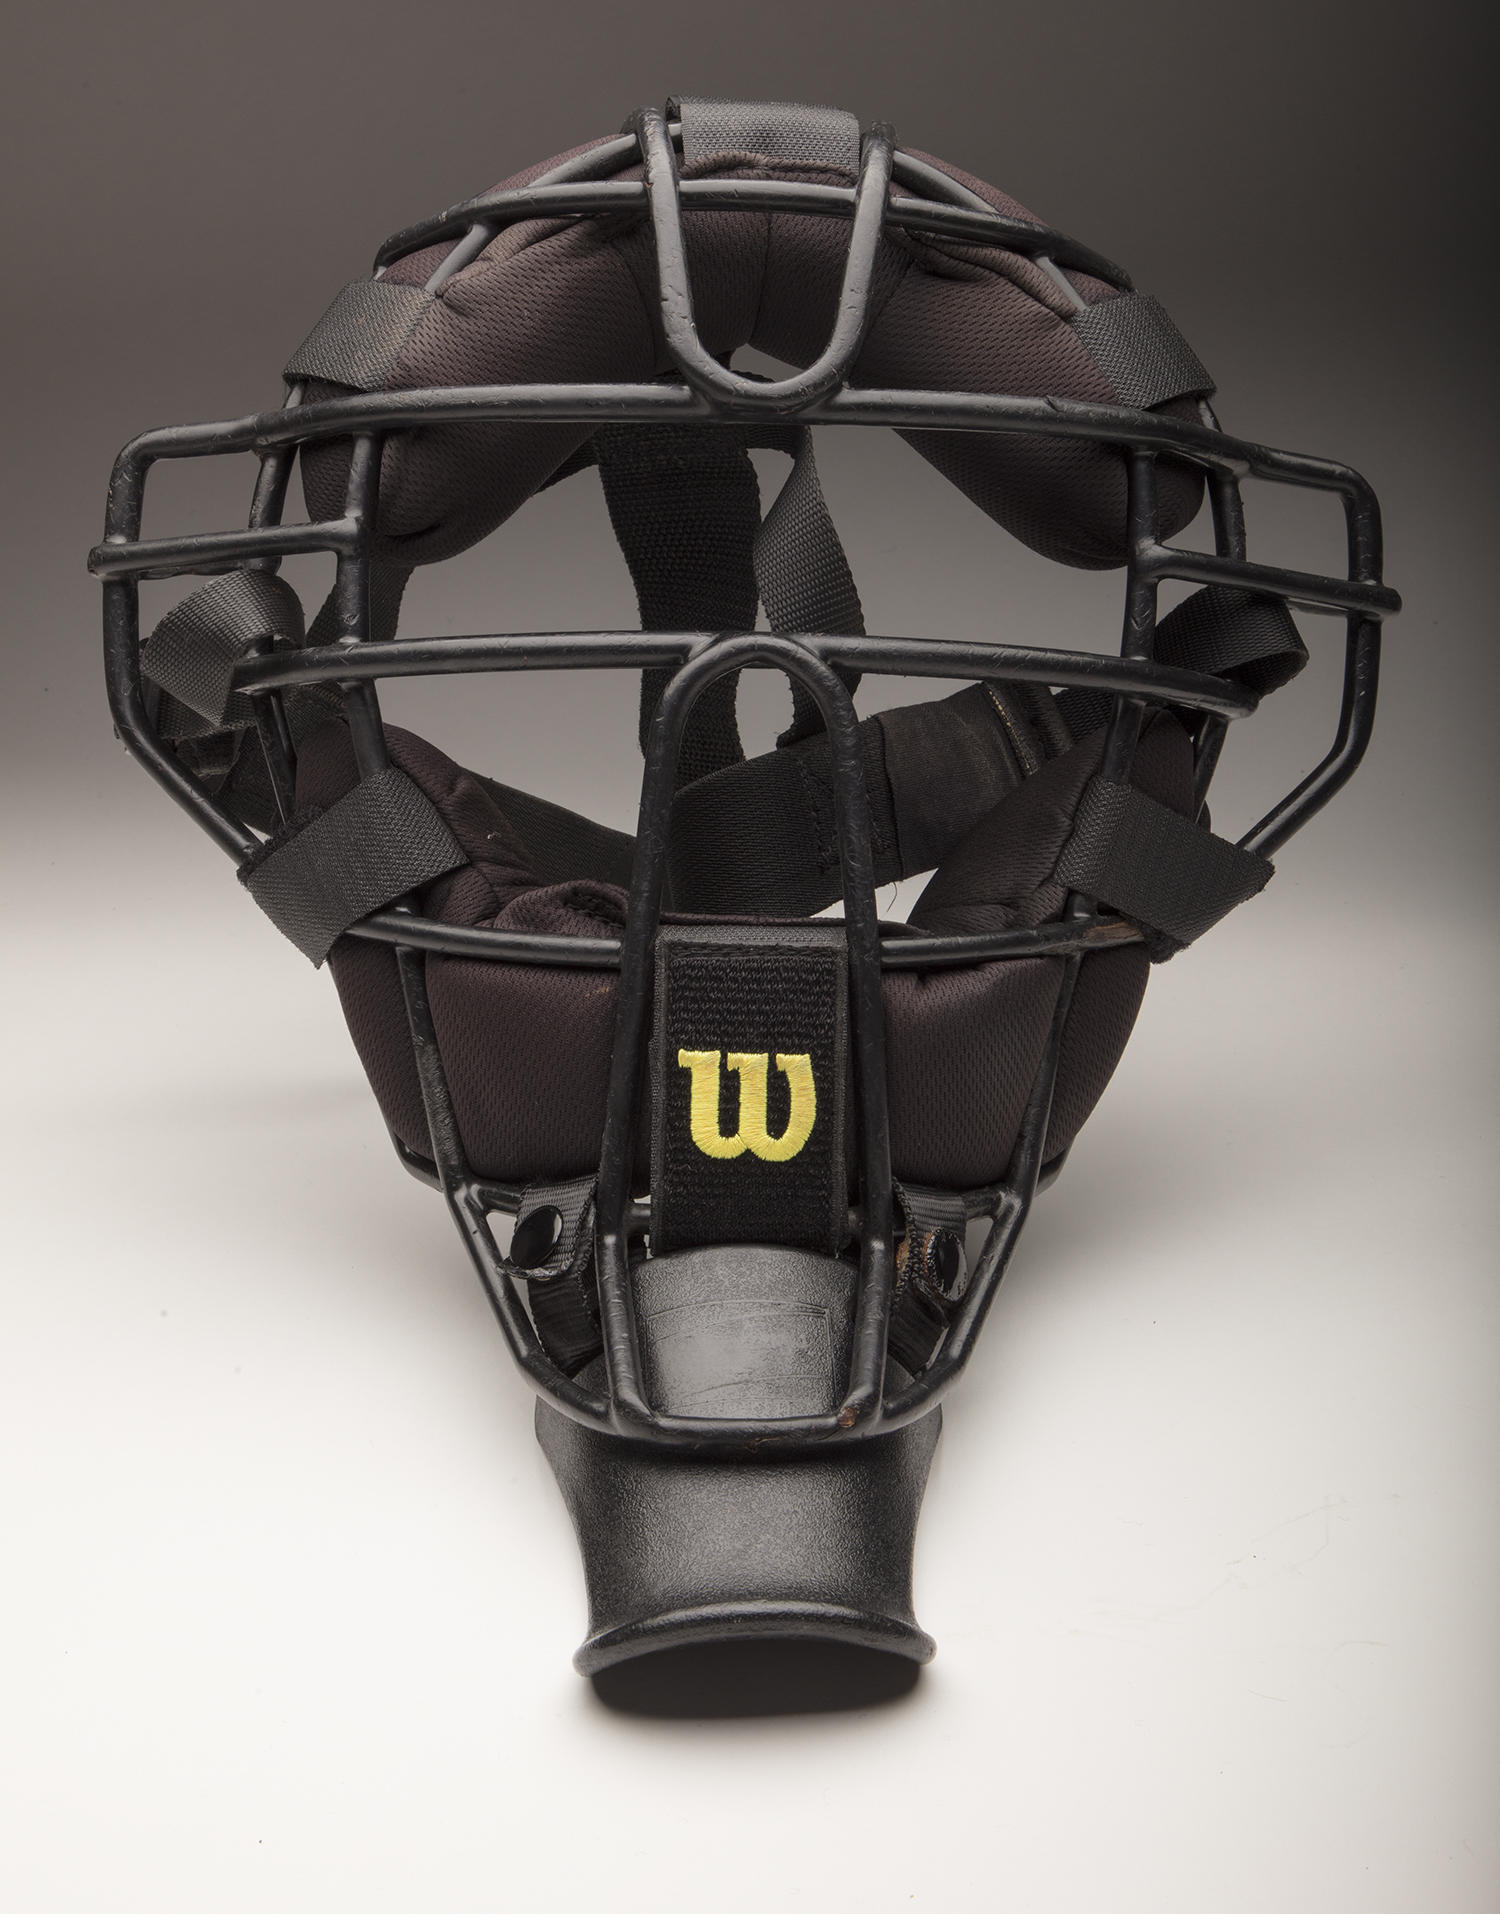 This catcher's mask, donated by female umpire Jen Pawol, was used throughout her professional baseball umpiring career. (By Photographer Milo Stewart Jr./National Baseball Hall of Fame and Museum)